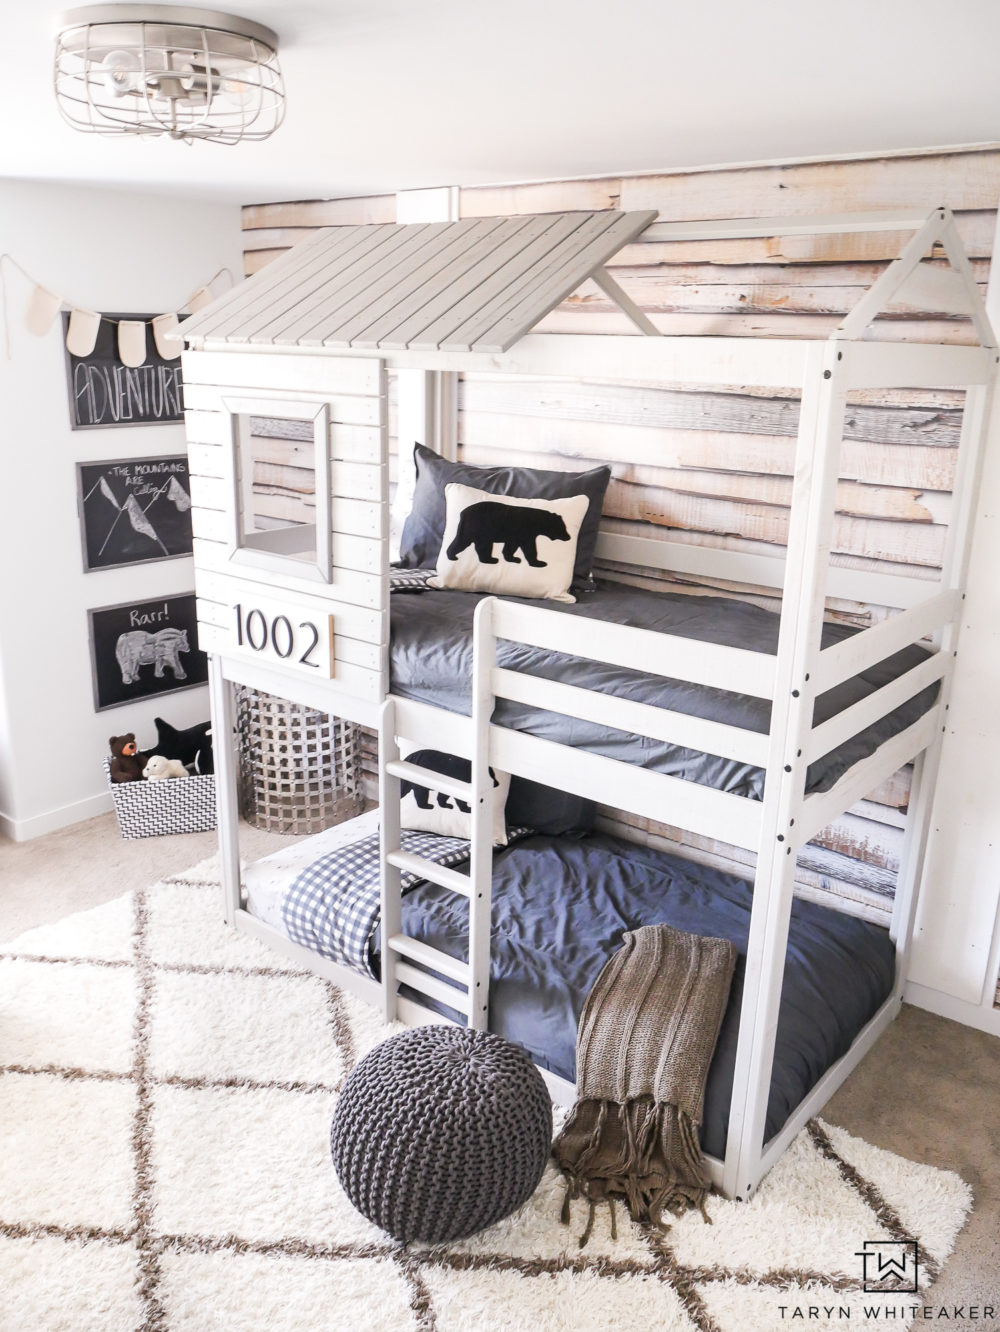 Take a tour of this Modern Adventure Boys Bedroom complete with a treehouse bunkbed and bear accents.